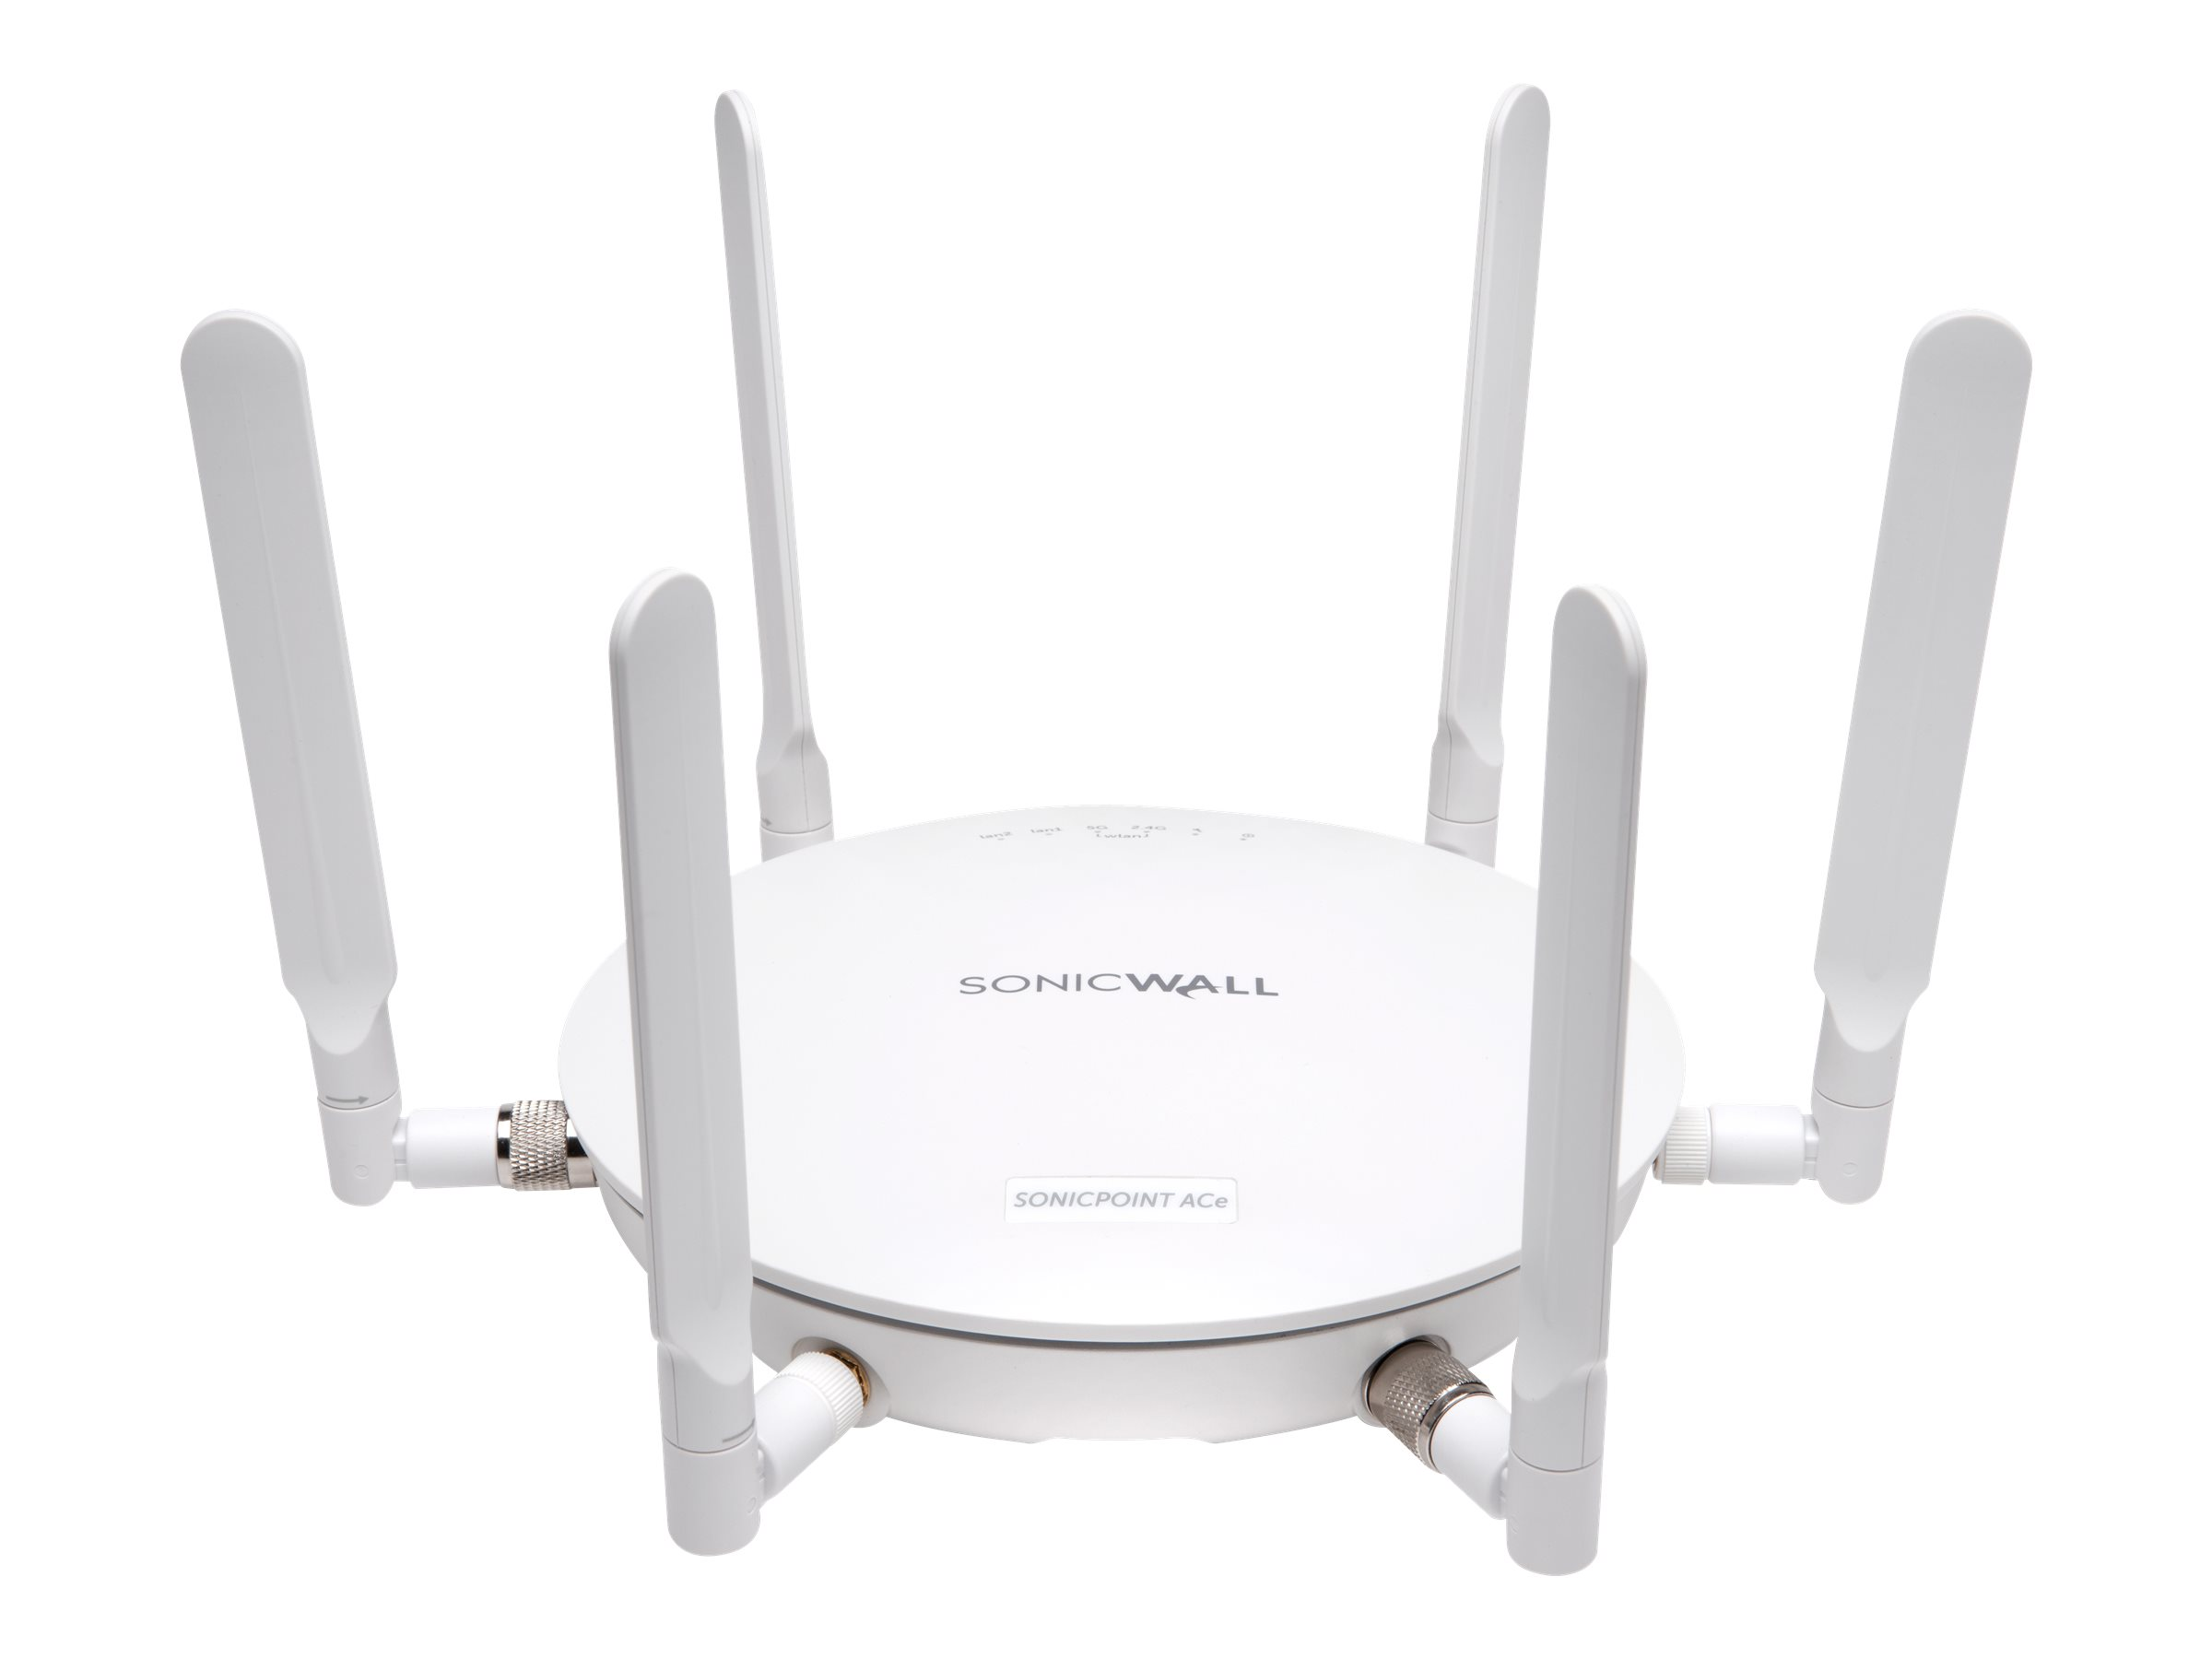 SonicWall SonicPoint ACe - Drahtlose Basisstation - mit Dynamic Support 24X7 für 3 Jahre - Wi-Fi - Dualband (Packung mit 8)